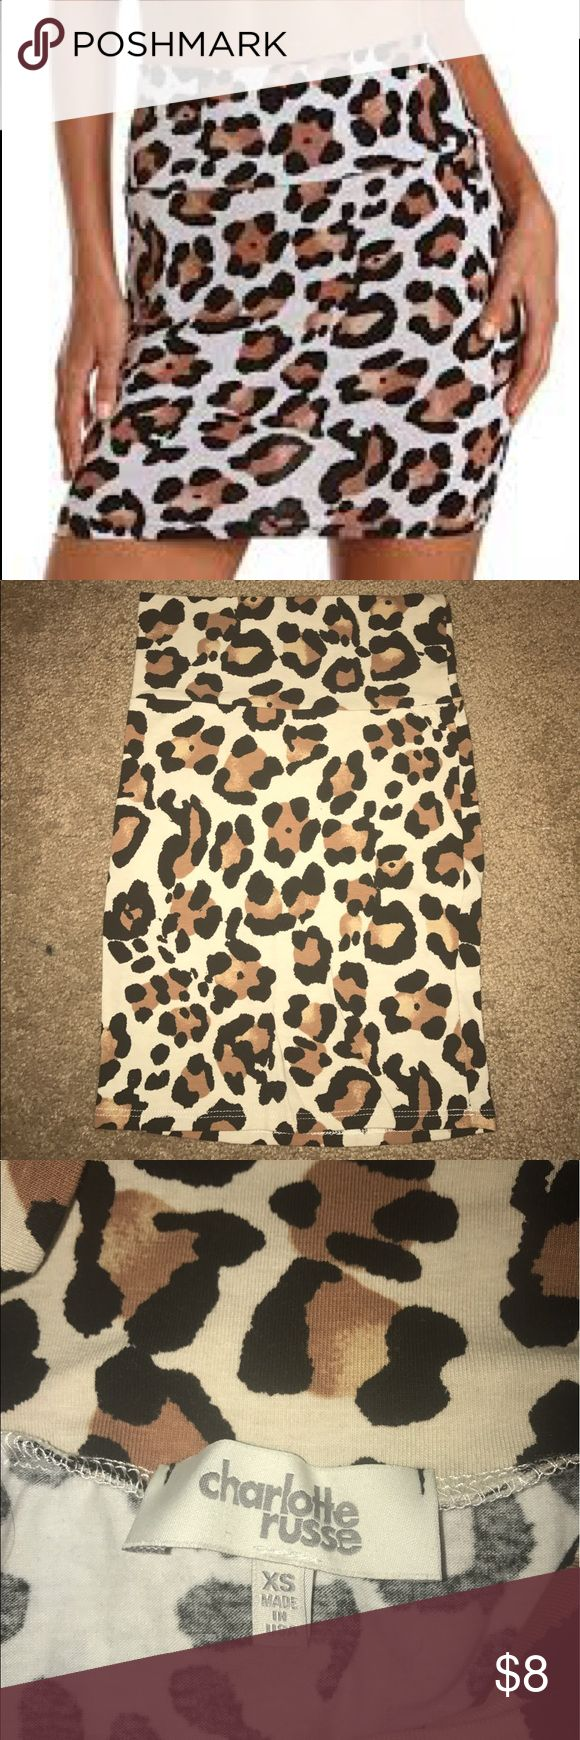 CR Cheetah Body Con Skirt EUC, only worn once. Charlotte Russe Skirts Mini